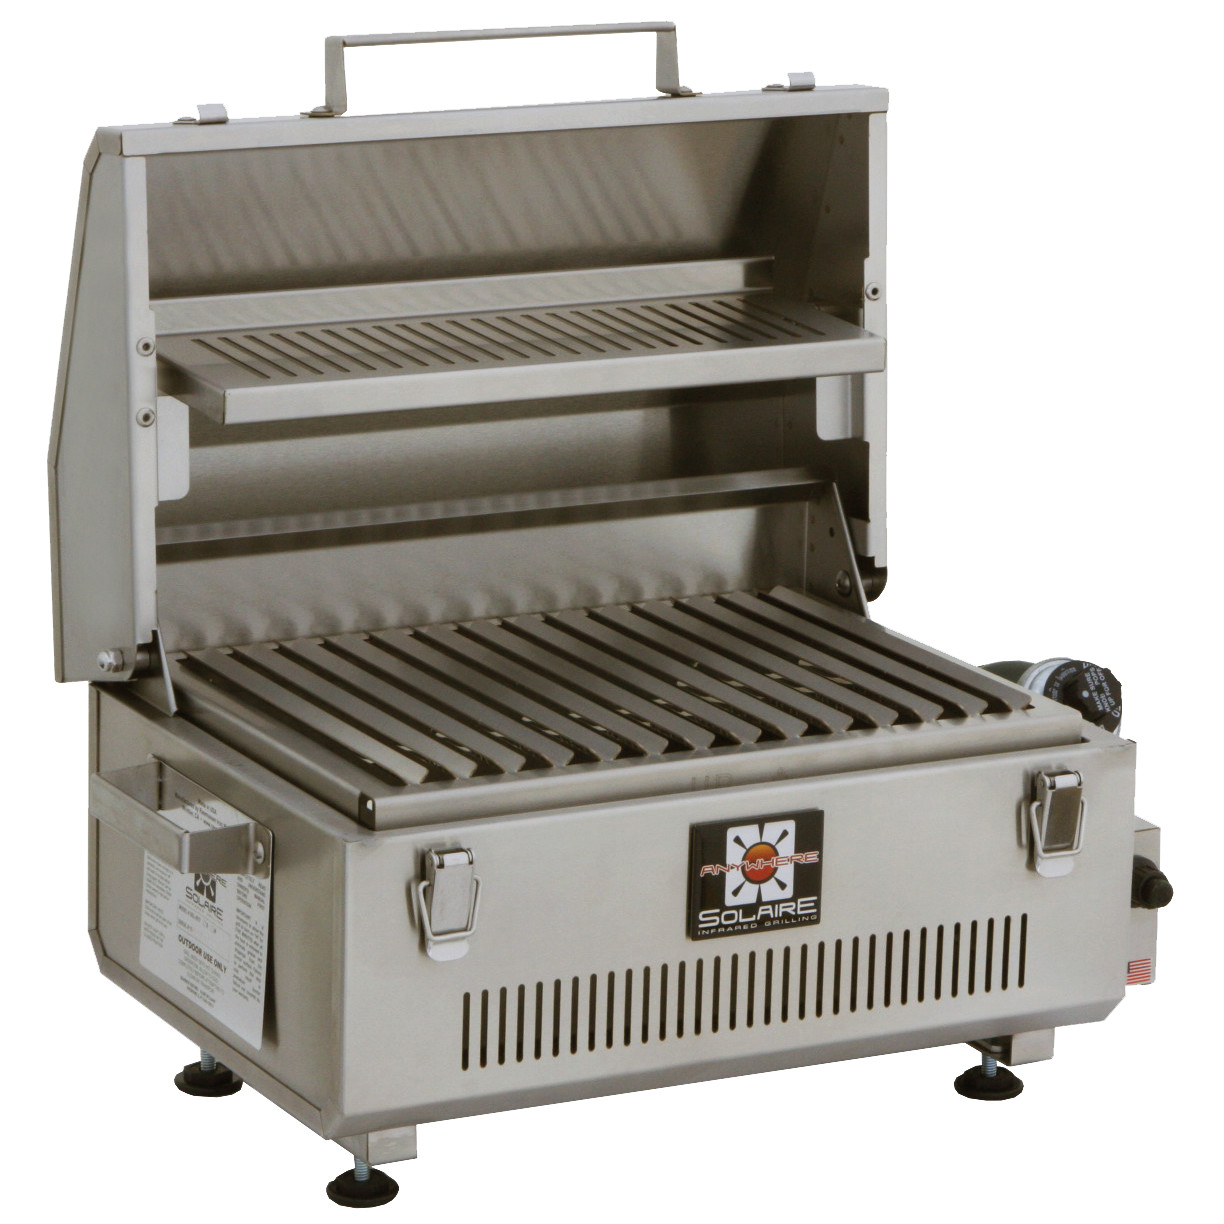 Portable Gas Grill : Portable infrared grill solaire gas